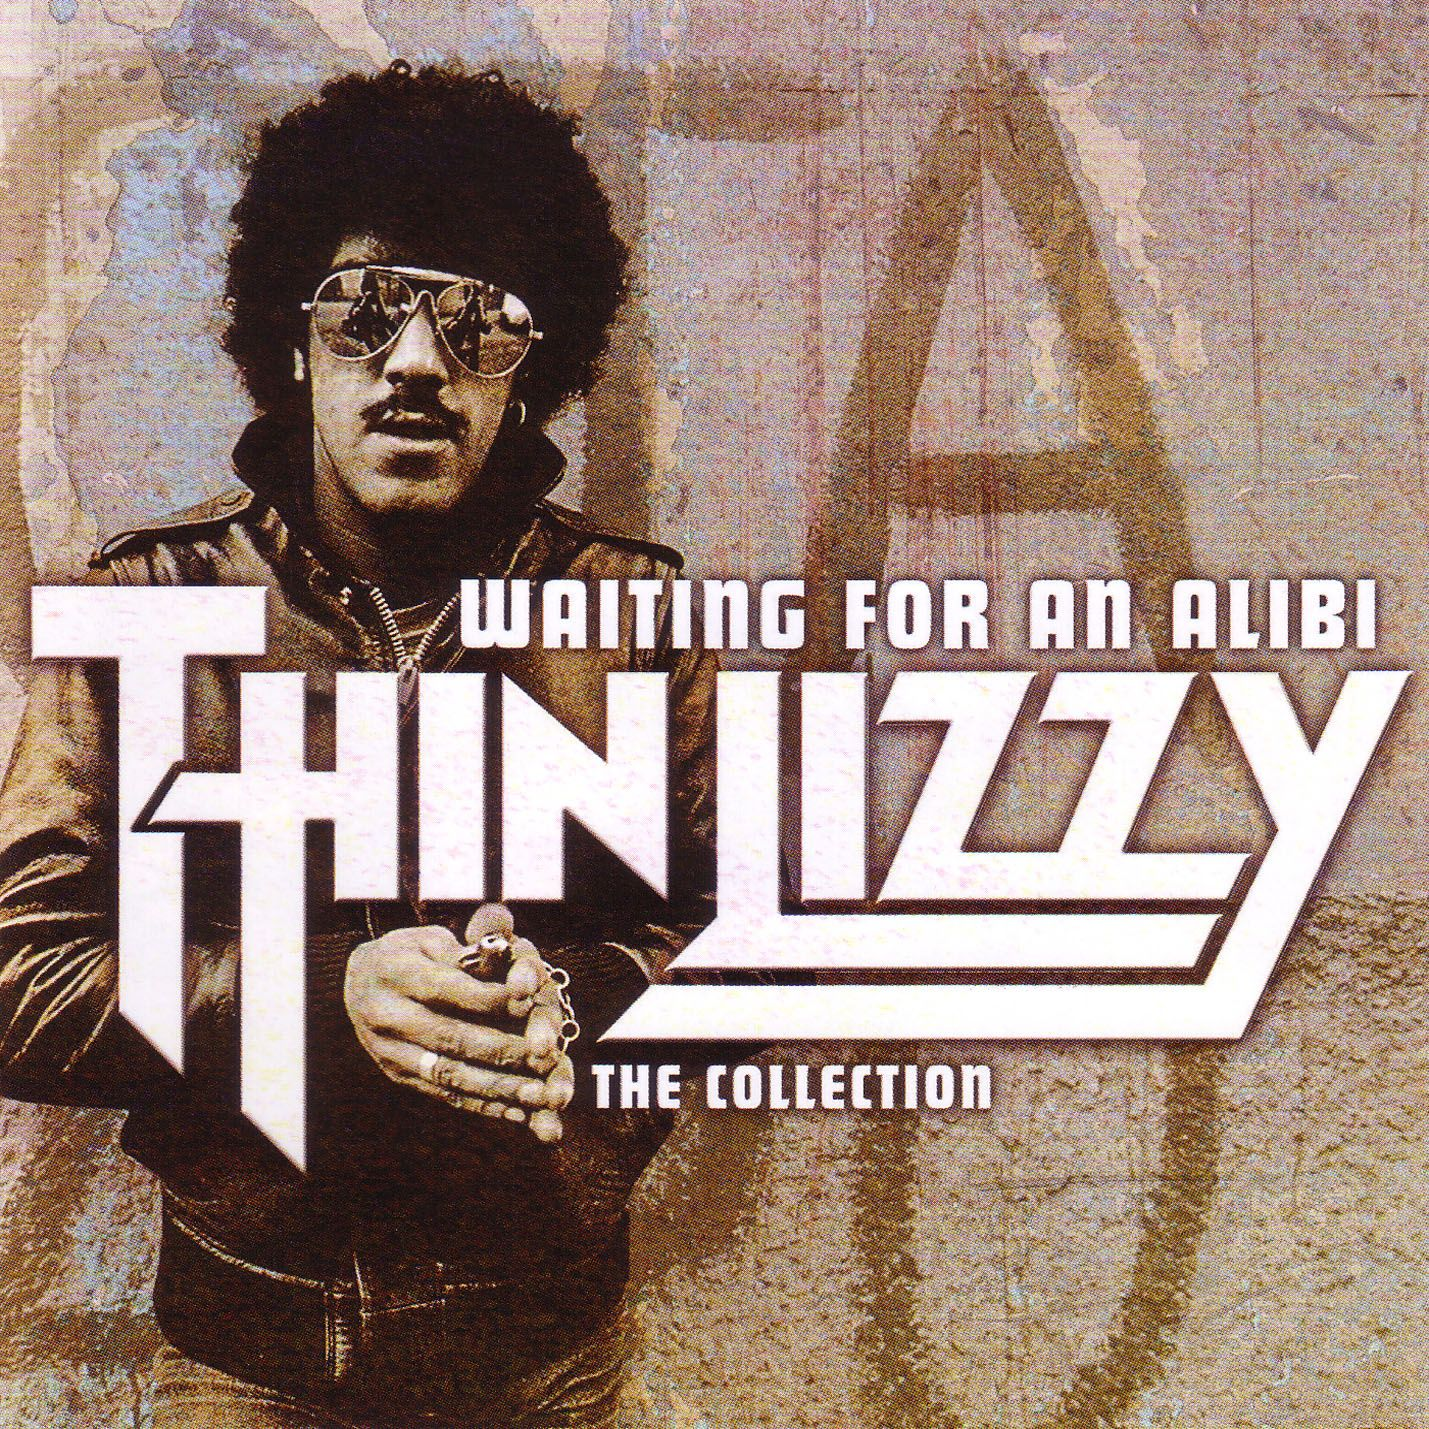 Thin Lizzy - Waiting For An Alibi - The Collection album cover